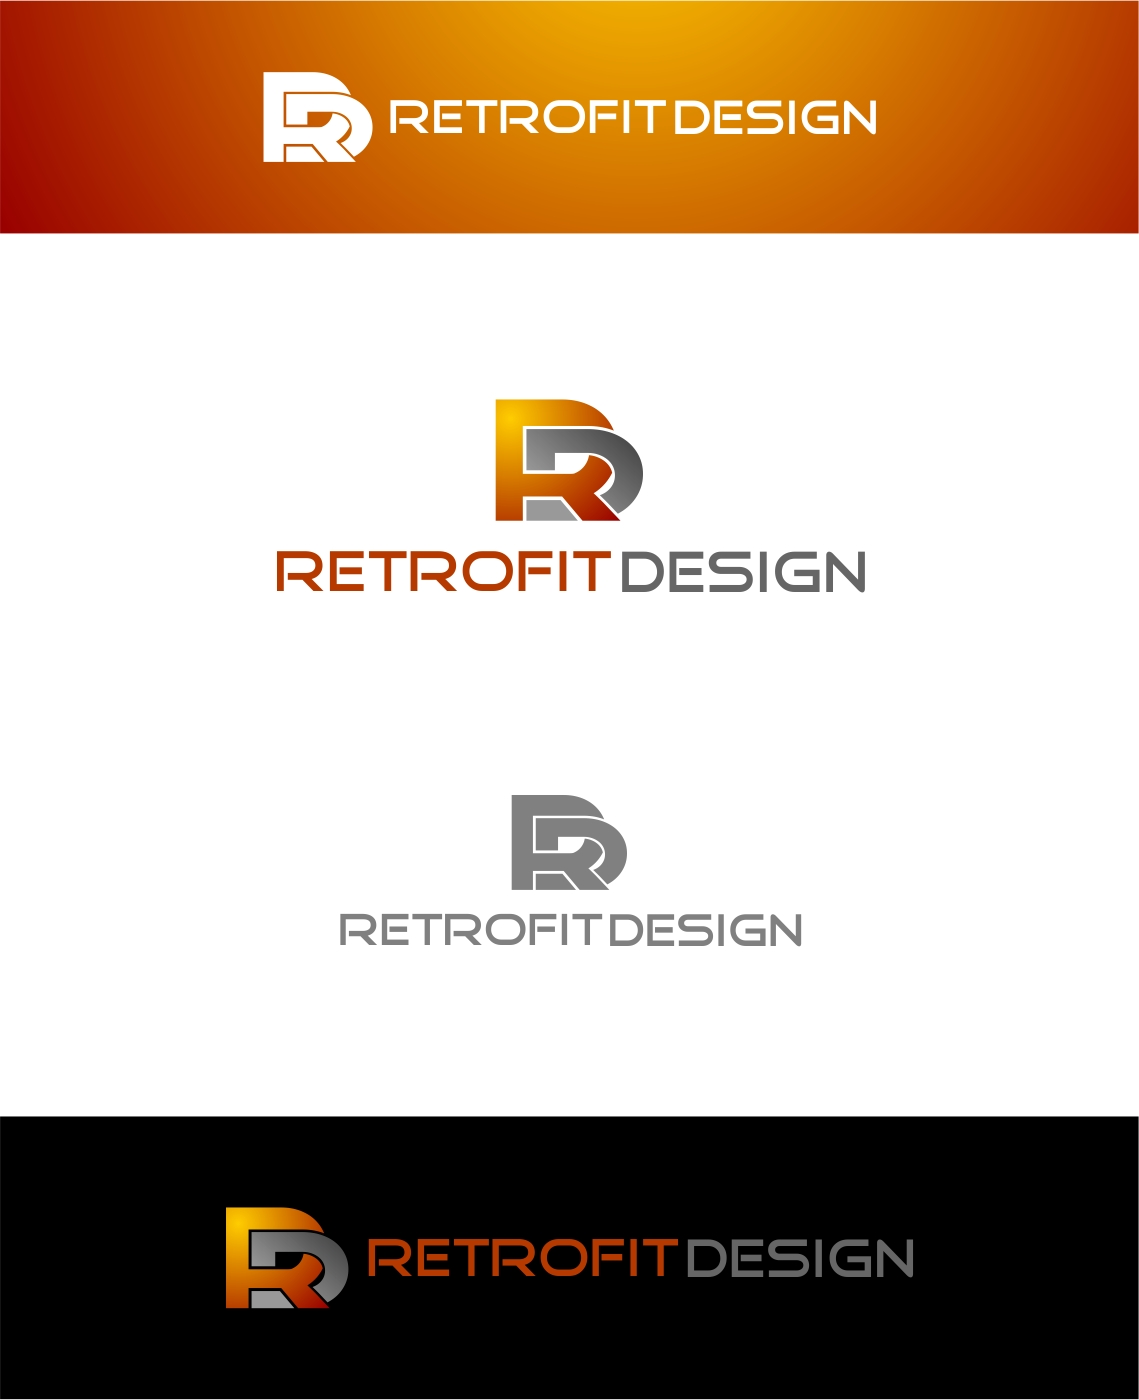 Logo Design by haidu - Entry No. 175 in the Logo Design Contest Inspiring Logo Design for retrofit design.